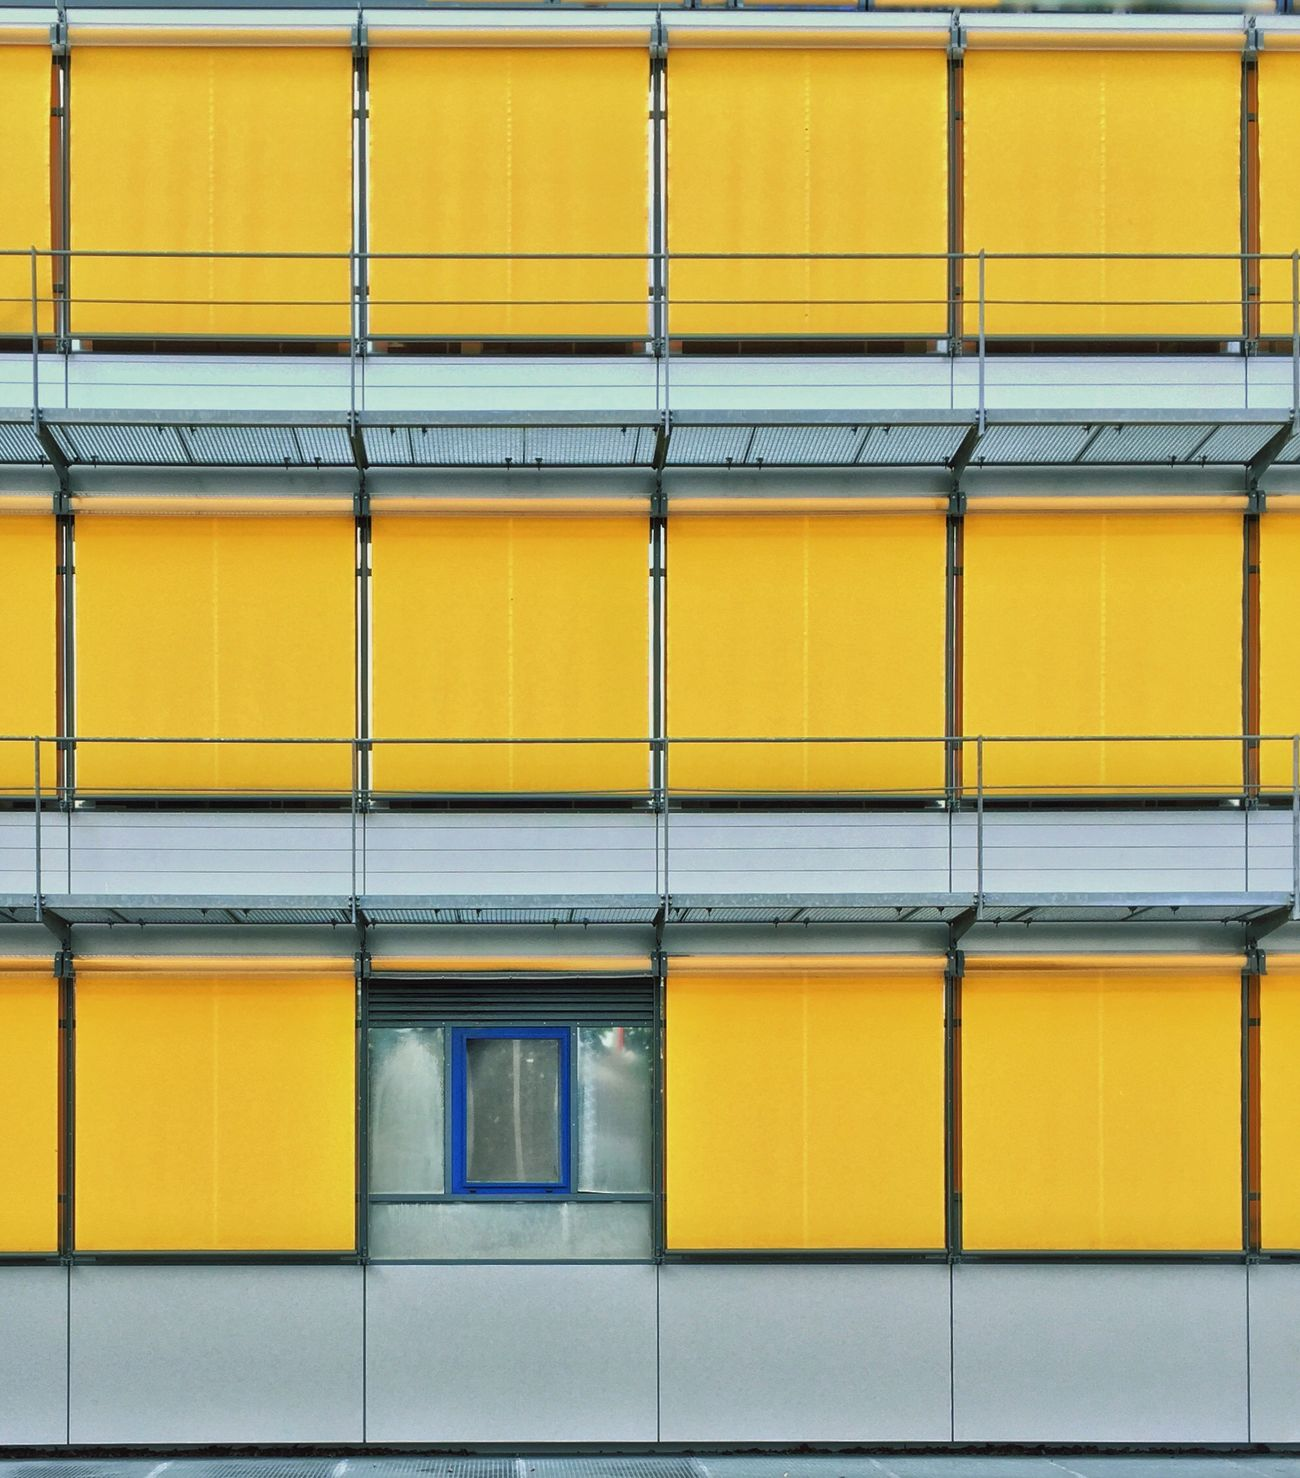 Things That Are Yellow Windows Abstractions In Colors Blinds Architecture